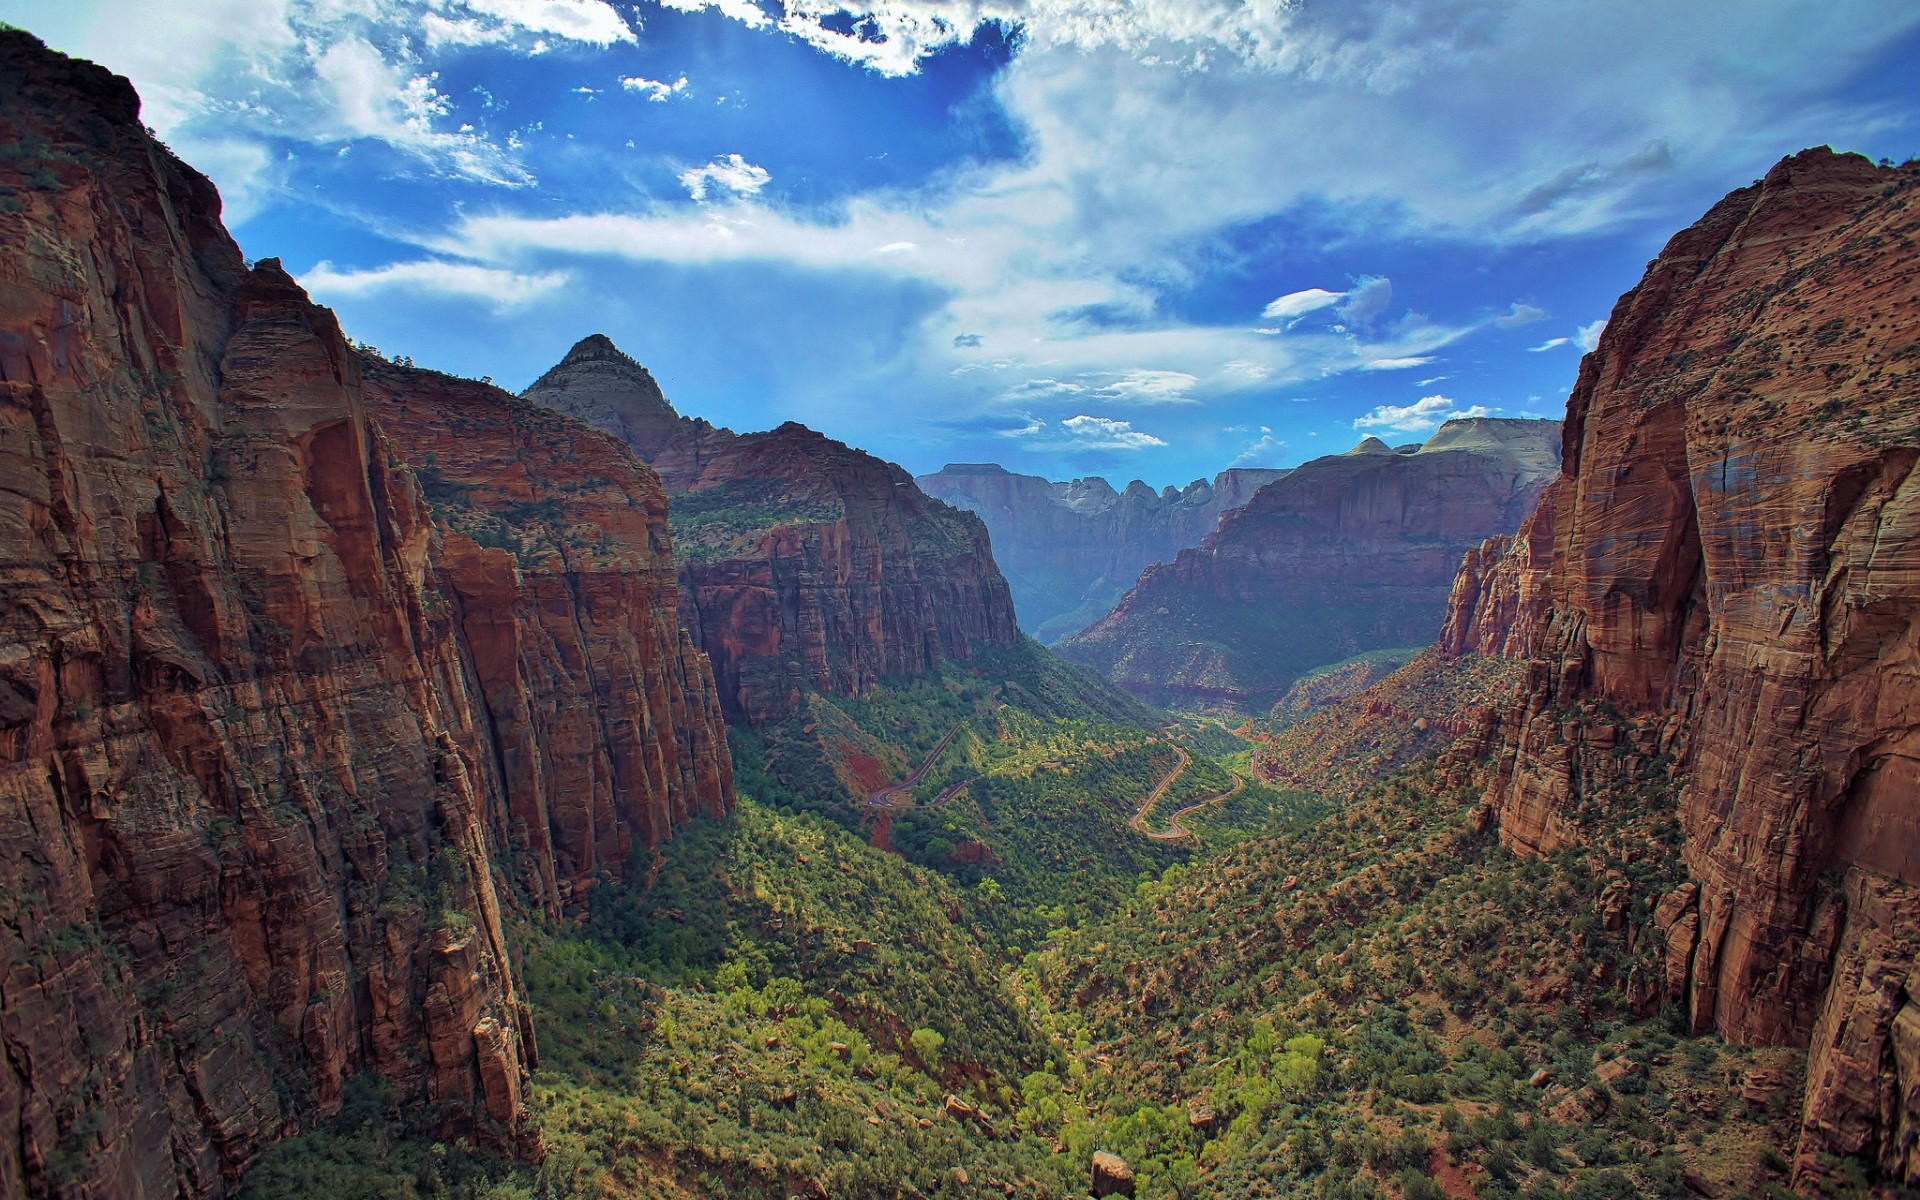 zion national park Computer Wallpapers Desktop Backgrounds 1920x1200